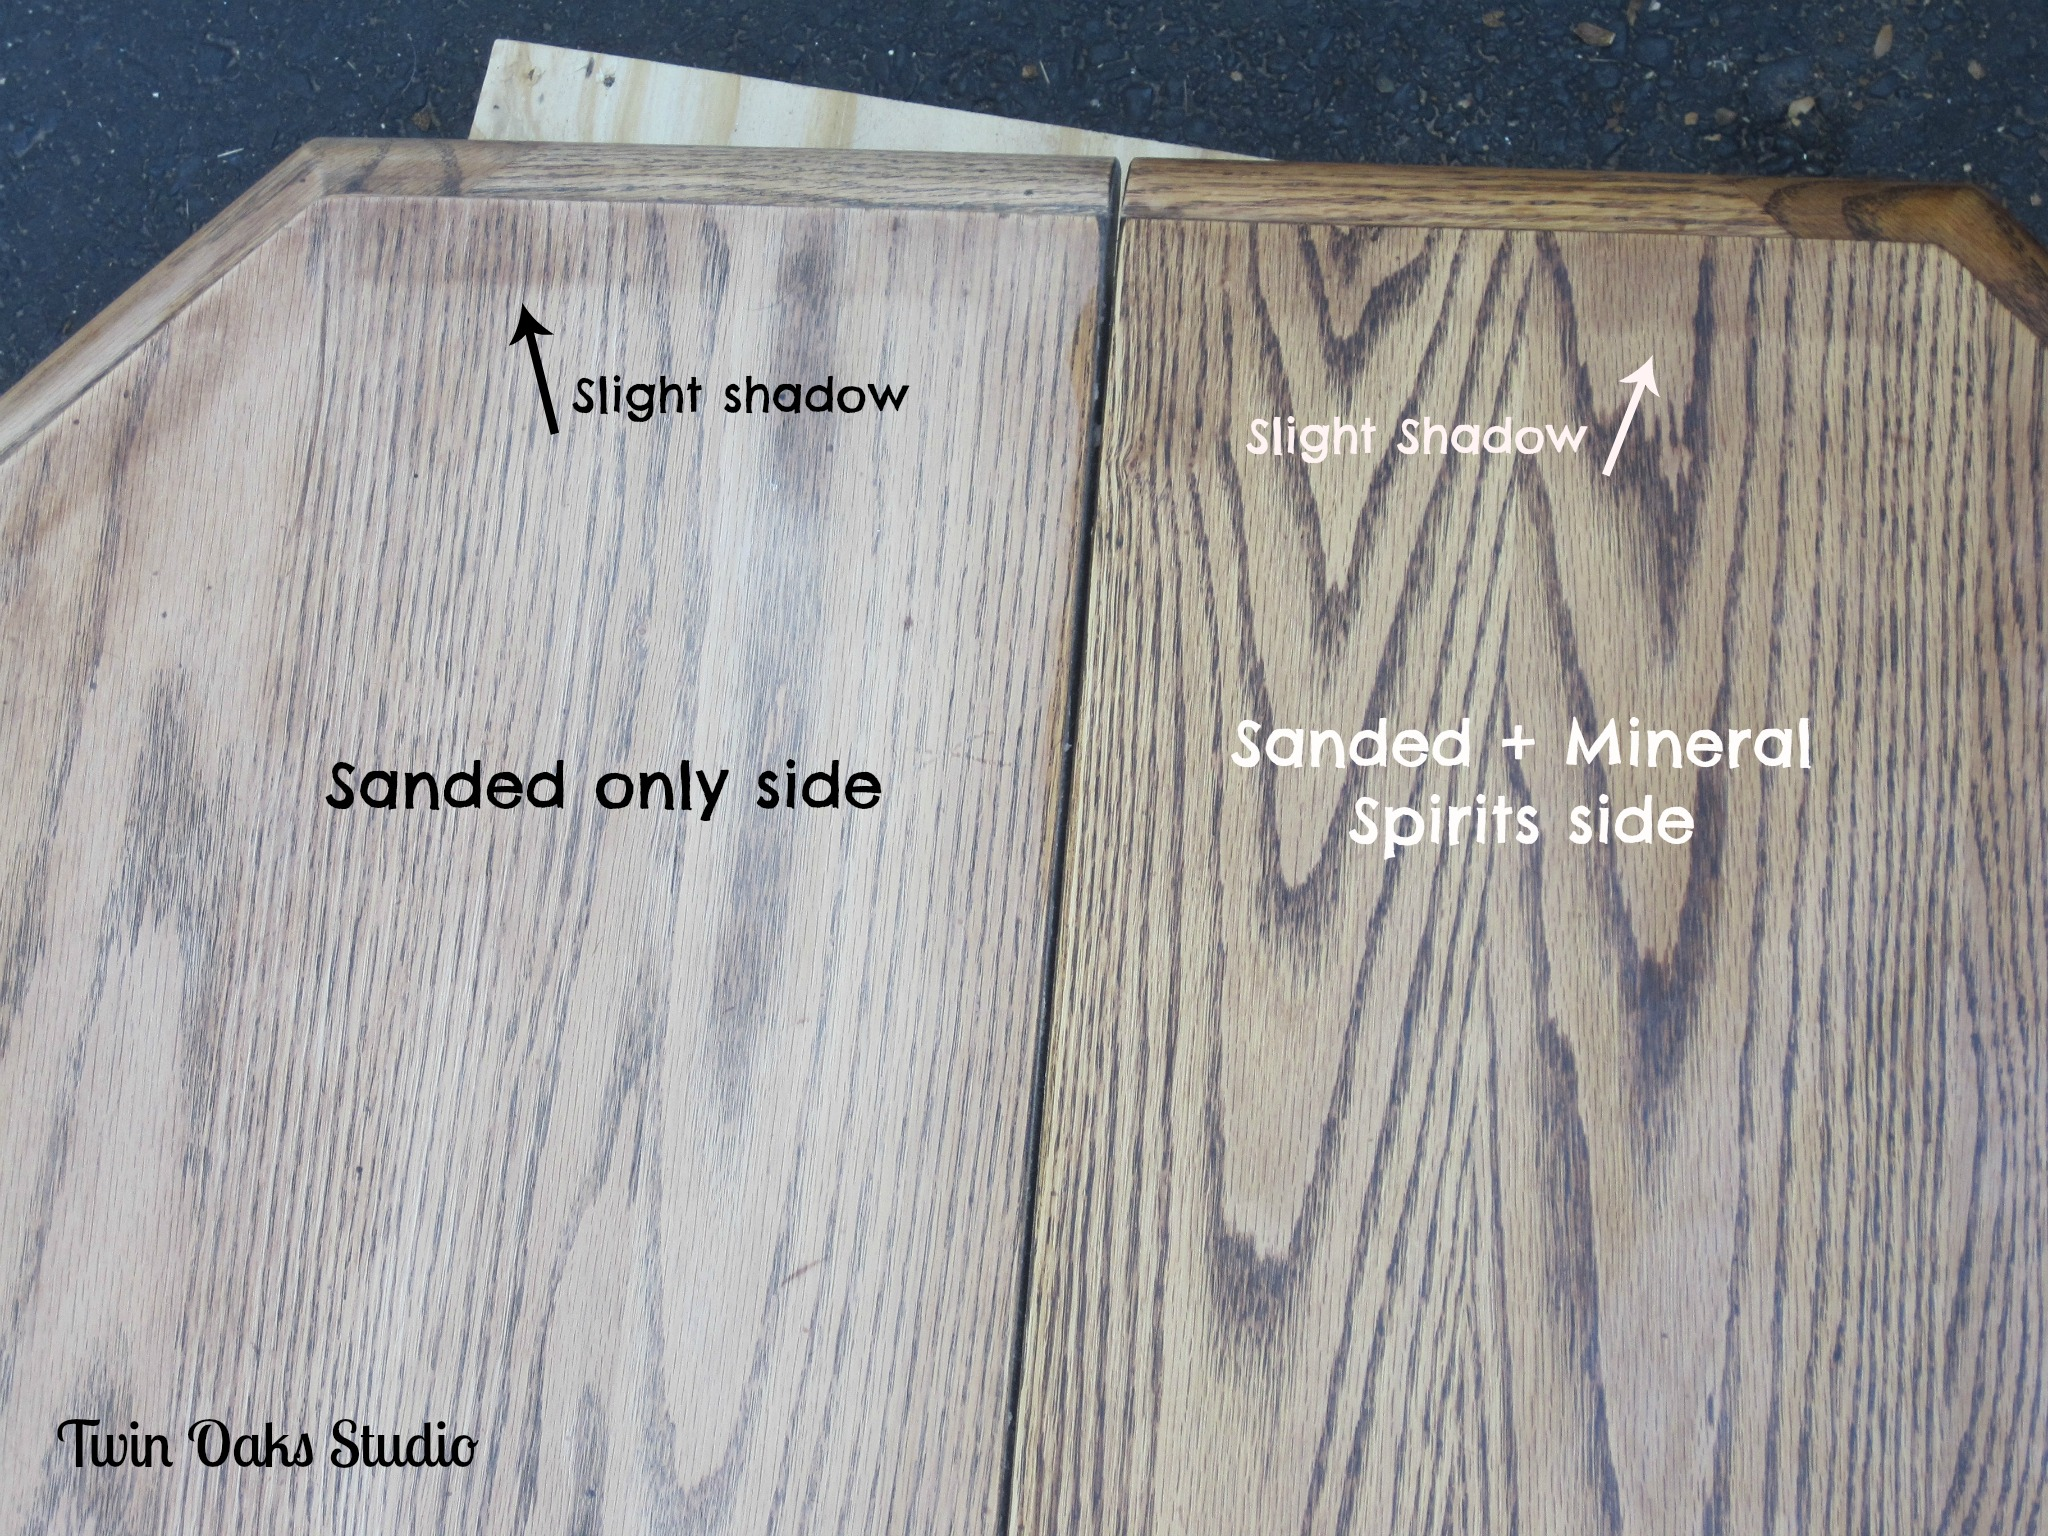 Refinish Stained Wood Wood Refinishing Tip Twin Oaks Studio